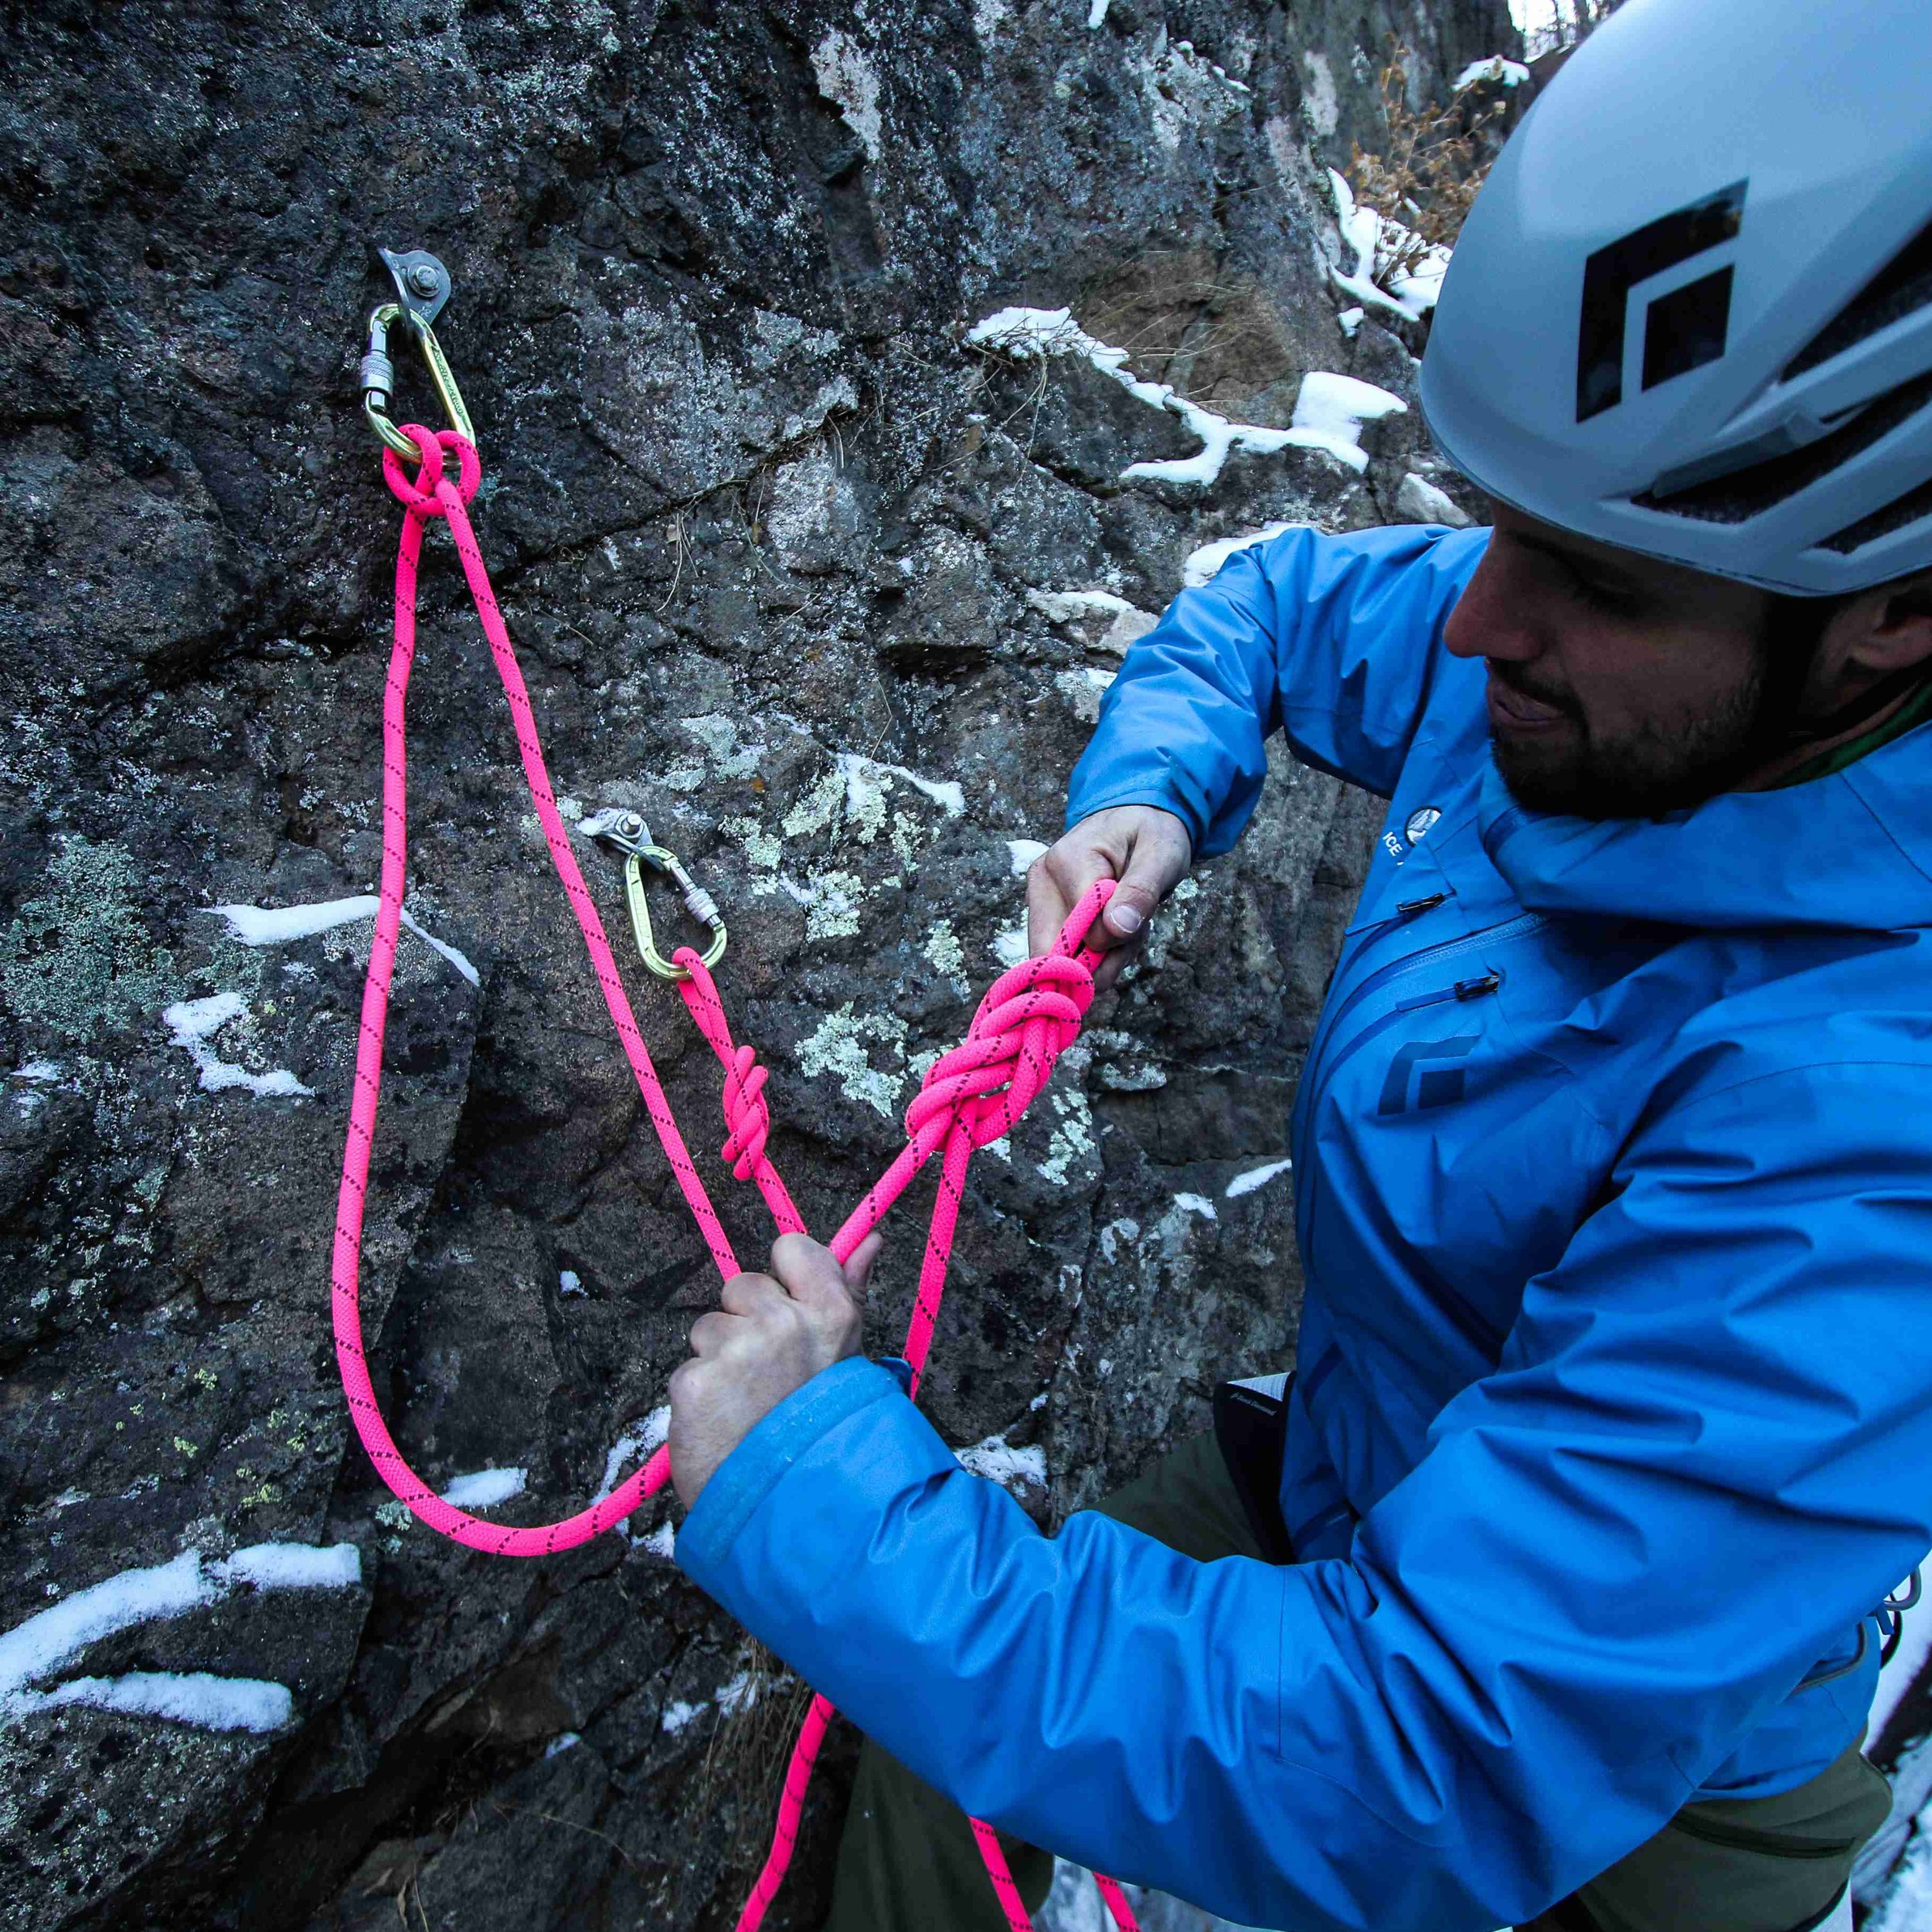 9. With the working end of the rope a few feet away from the clove hitch, tie a figure-8 on a bight and clip it into the same locking carabiner to close the system. -